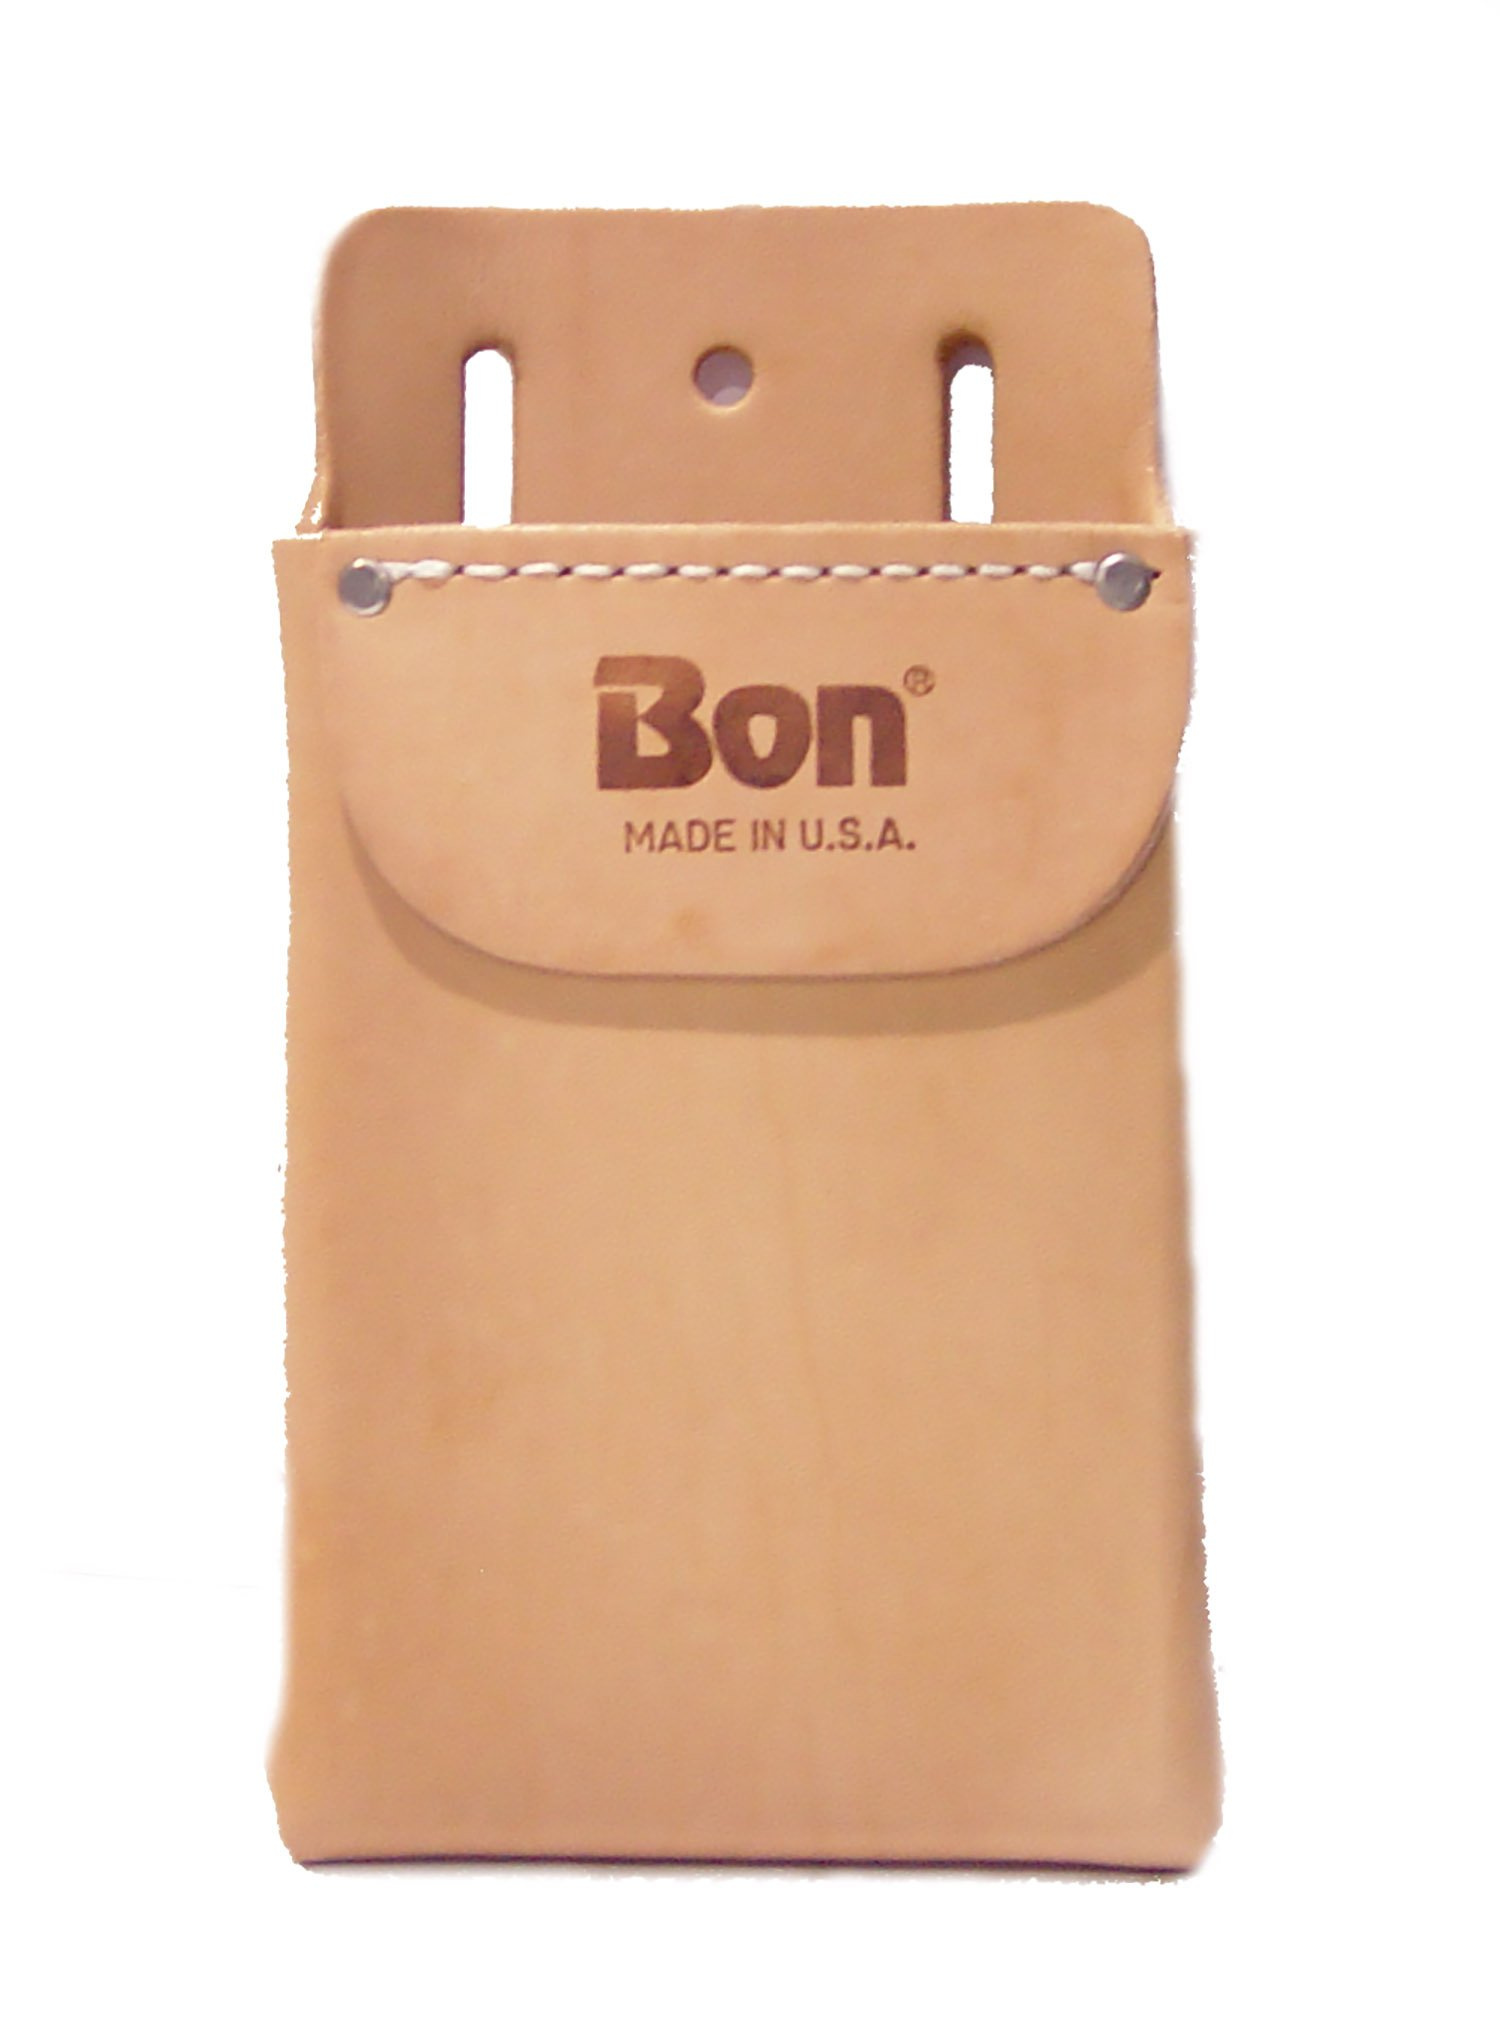 Bon by Heritage Leather 408X Single Pocket Box Shaped Fiber-Lined Tool Pouch with Flap